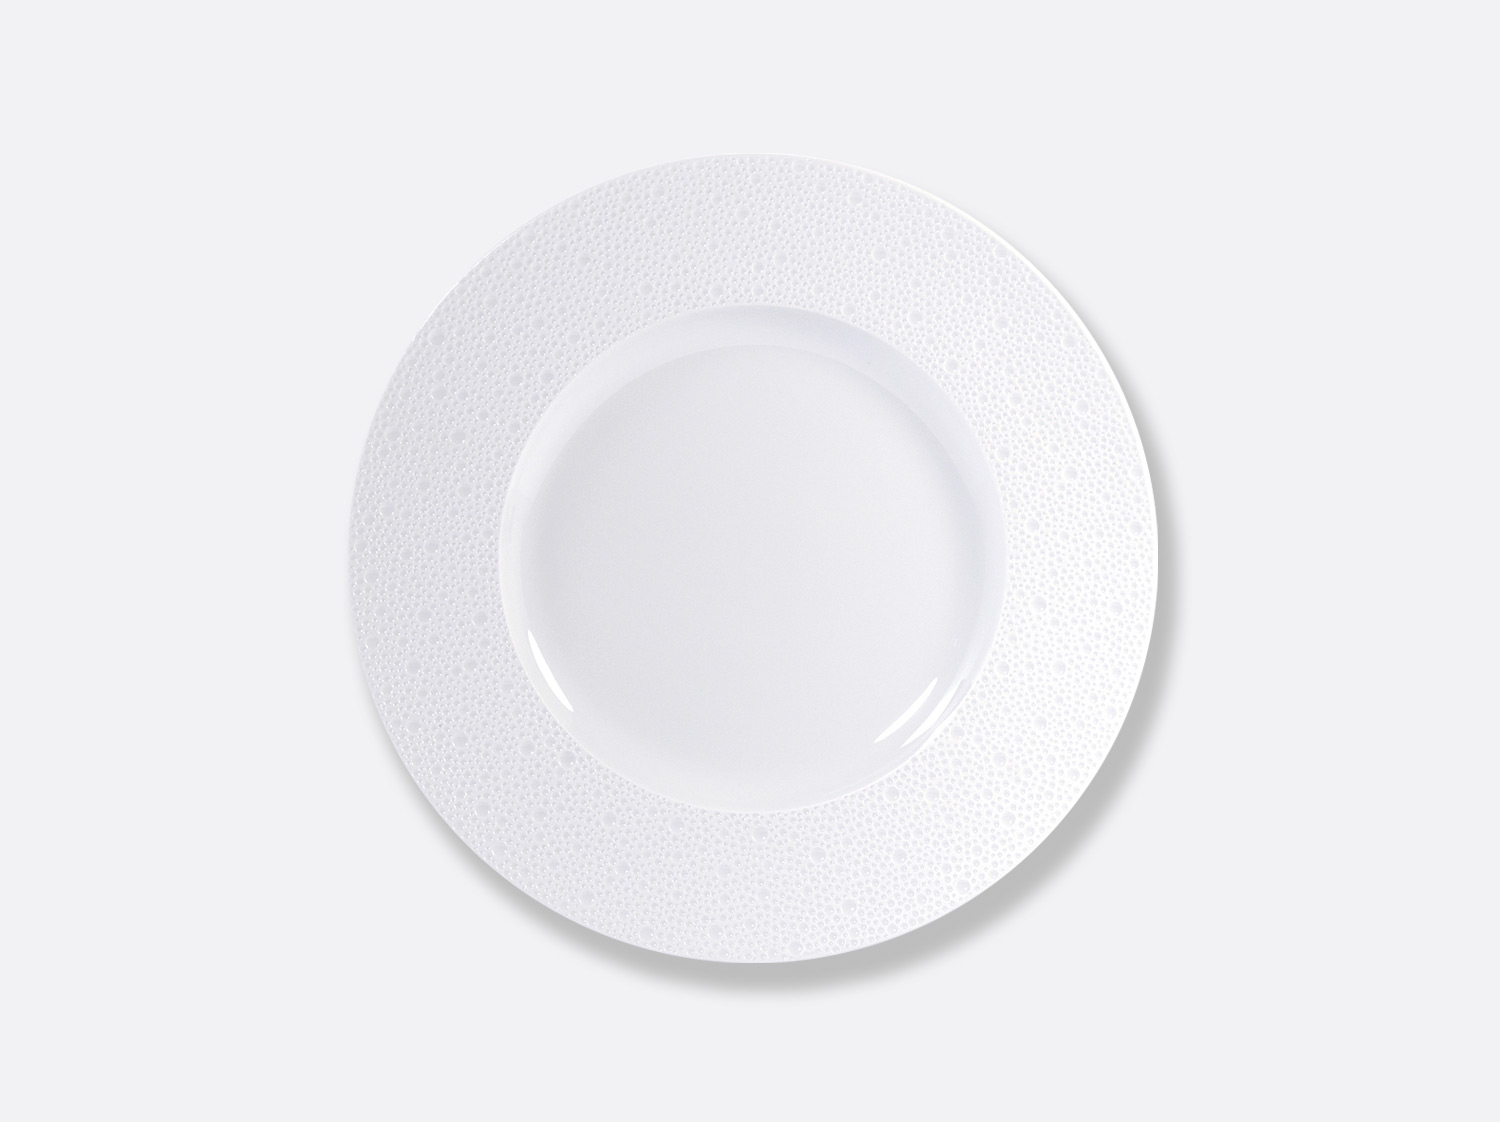 Assiette plate 29,5 cm en porcelaine de la collection Ecume Bernardaud